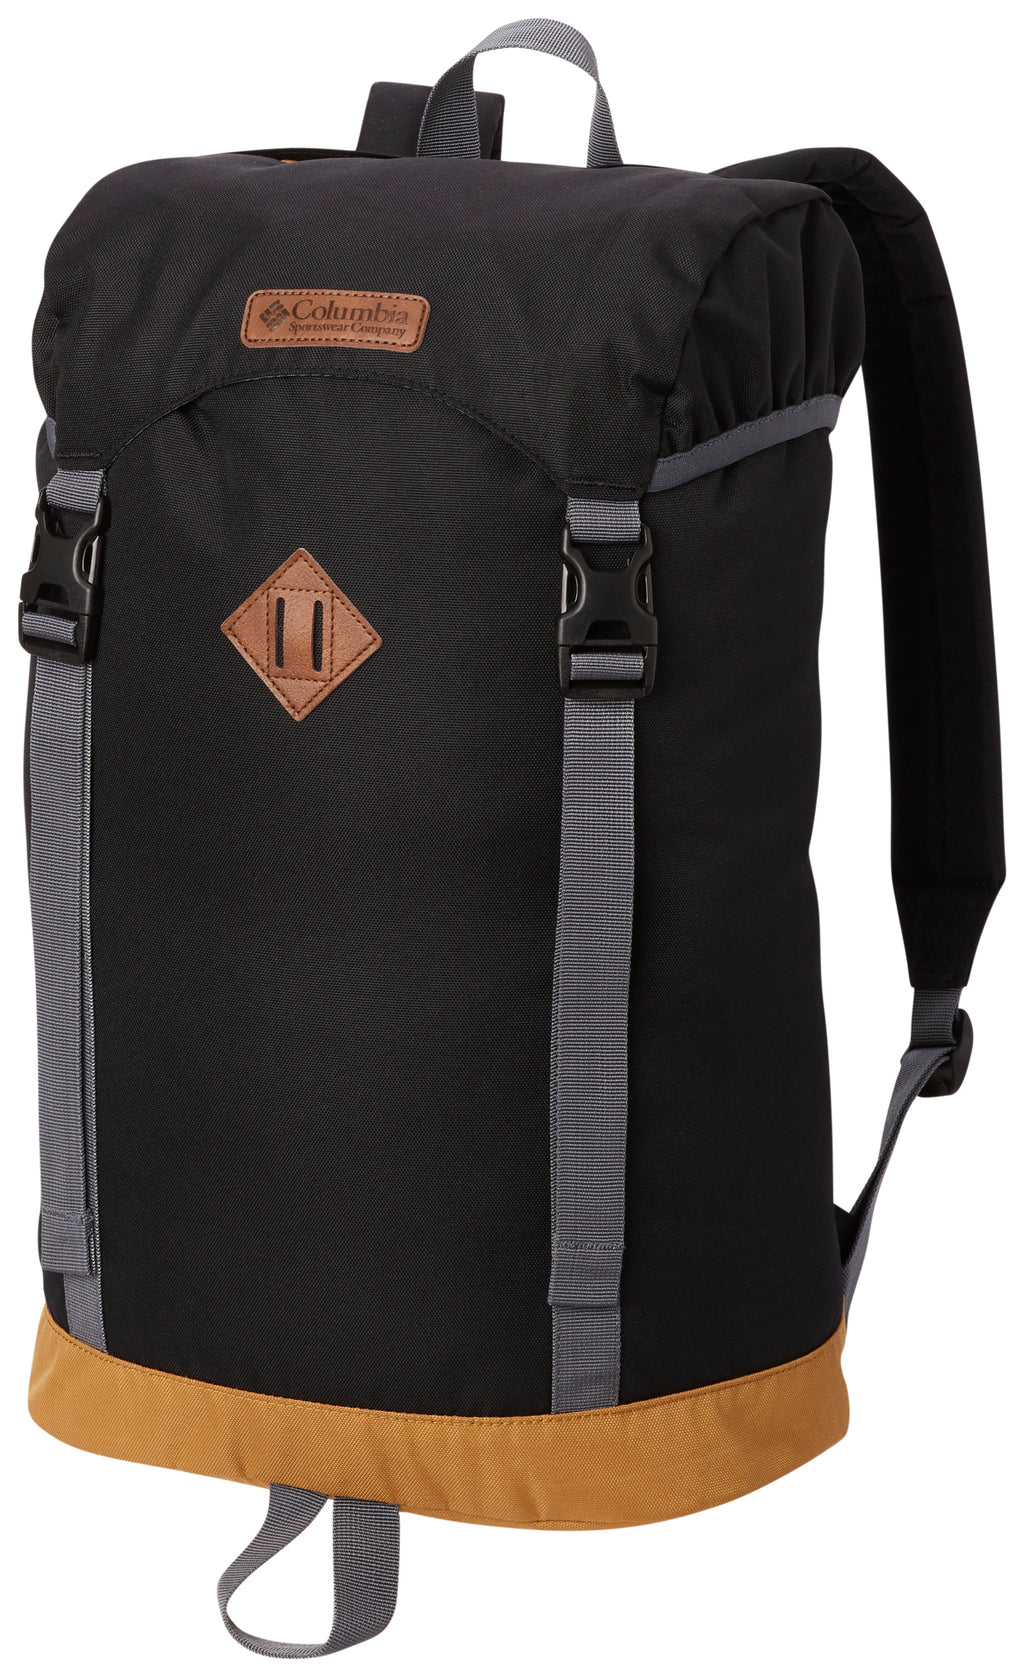 Columbia Classic Outdoor 25L promotional backpack